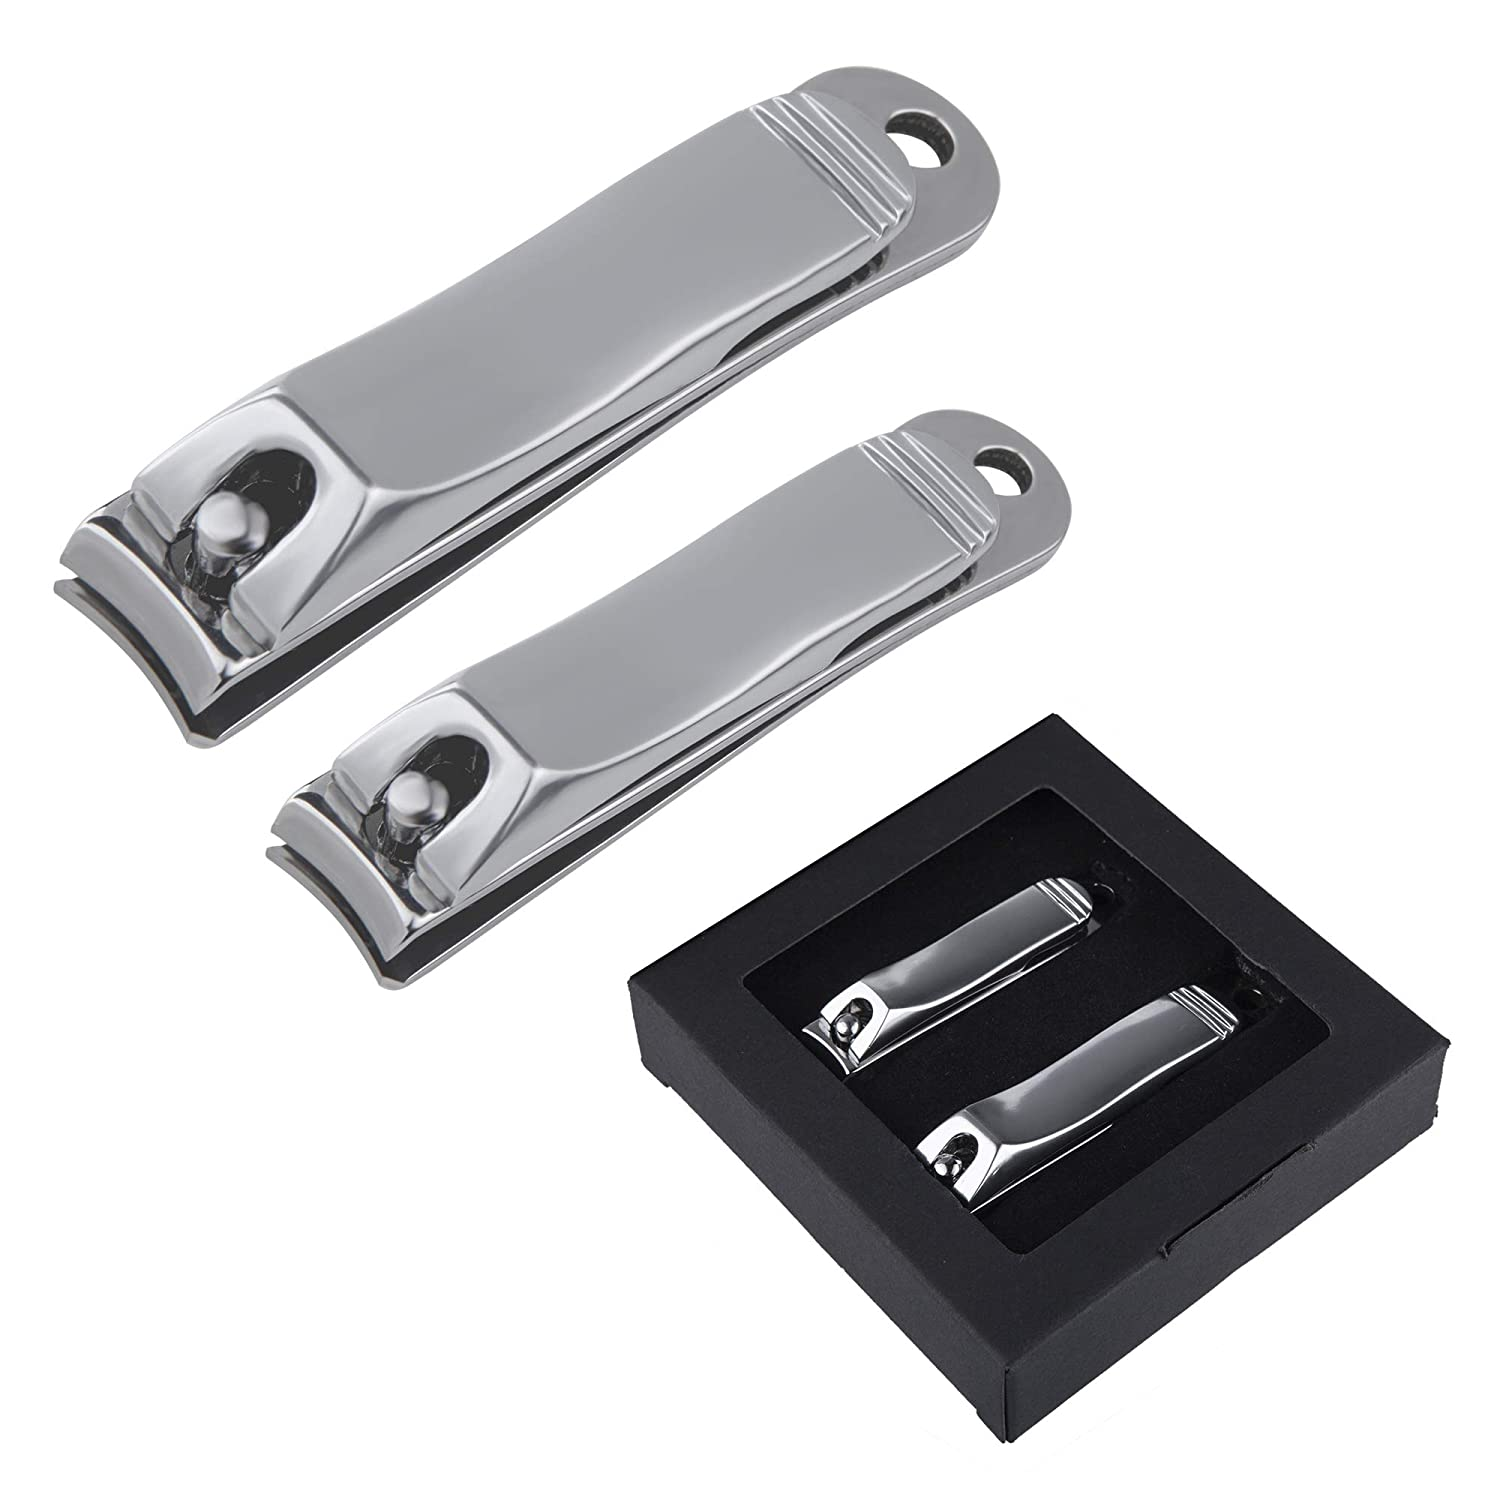 Nail Clipper Set Fingernail and Toenail Clipper,Nail Cutter Stainless Steel for Men & Women(2 Pack)